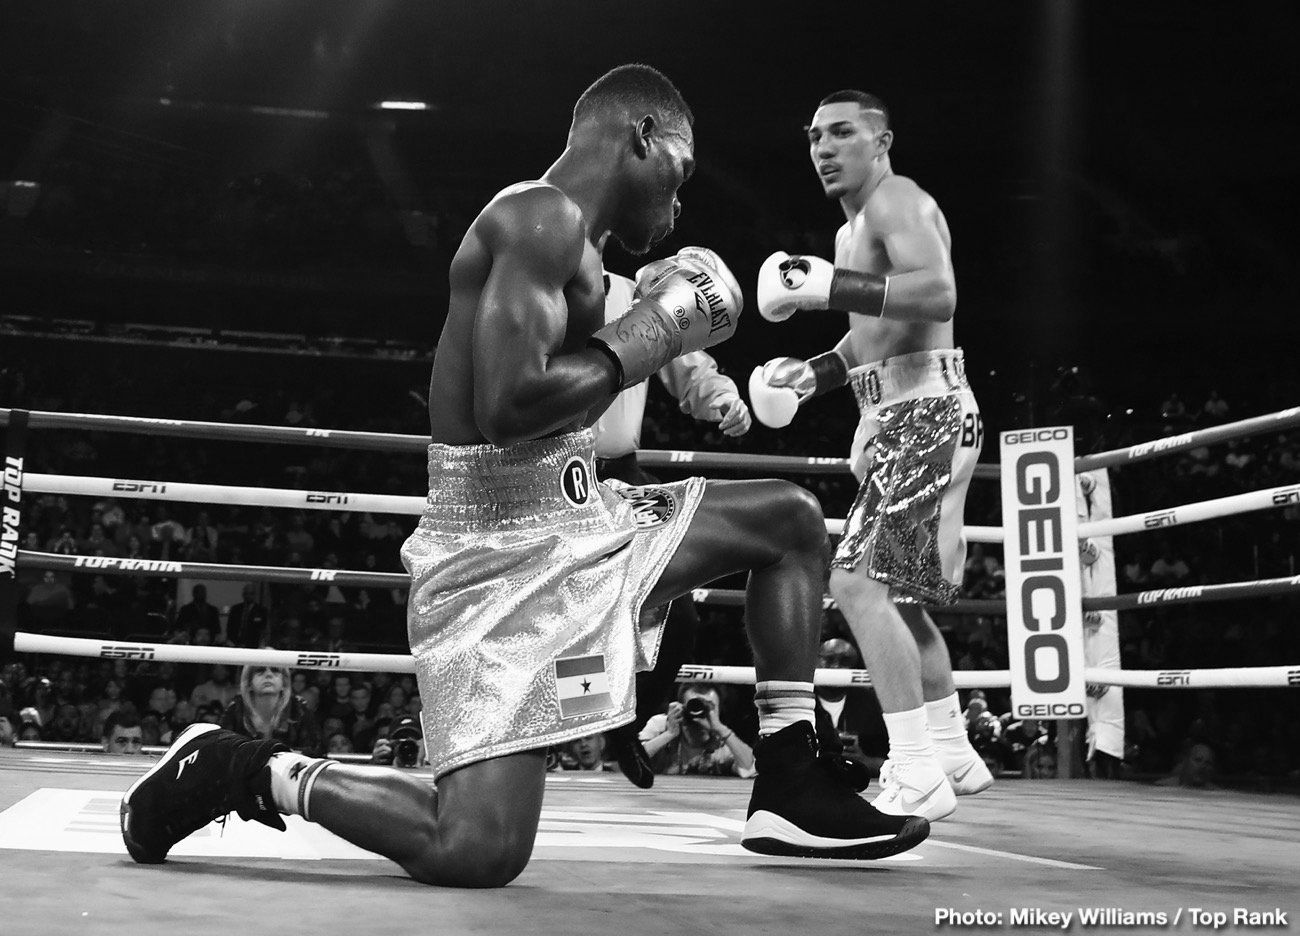 0-Richard_Commey_vs_Teofimo_Lopez_knockdown nb